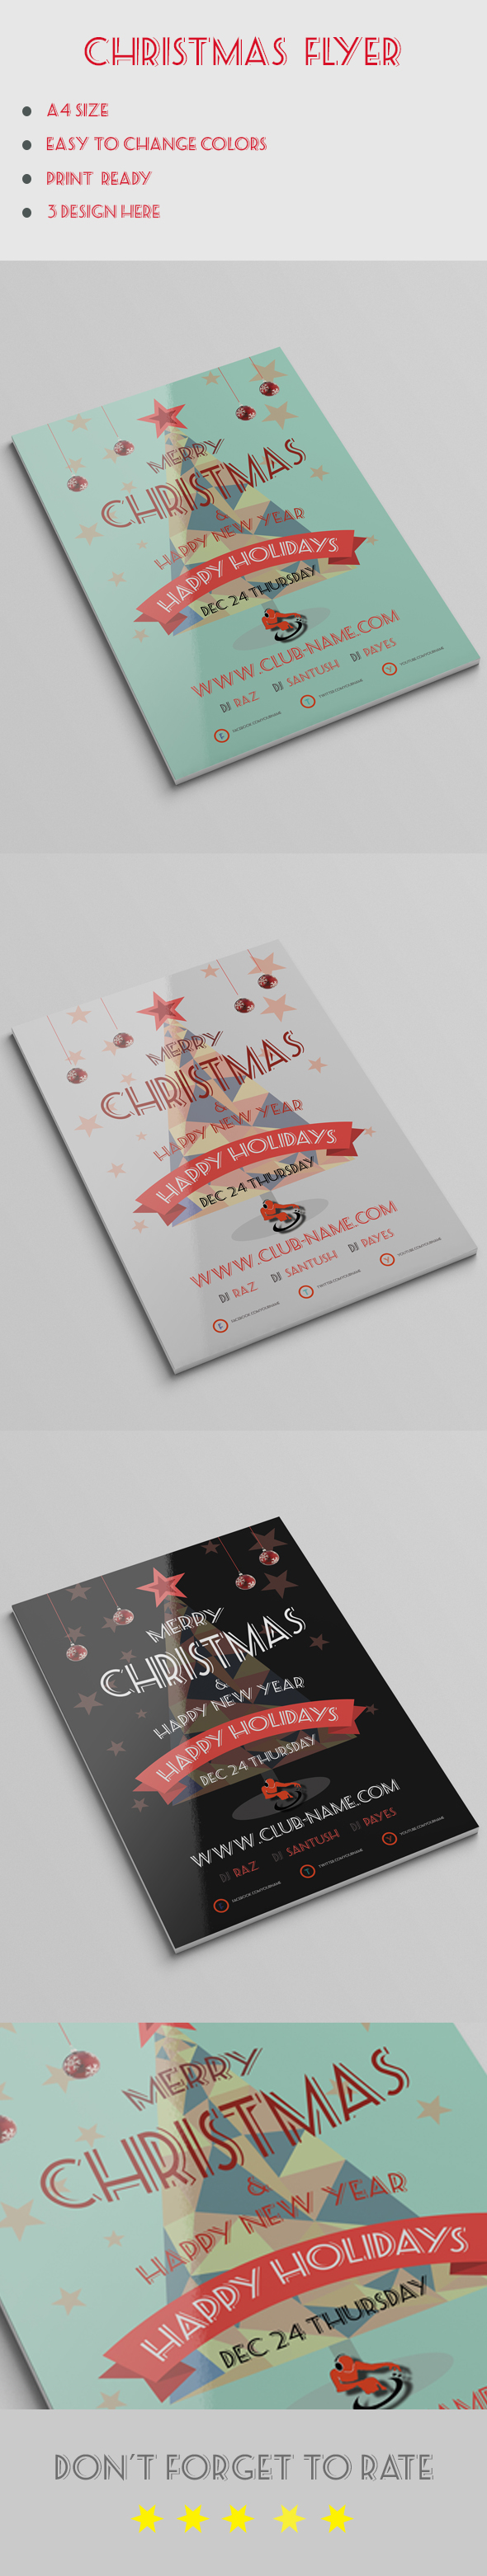 christmas flyer template on behance